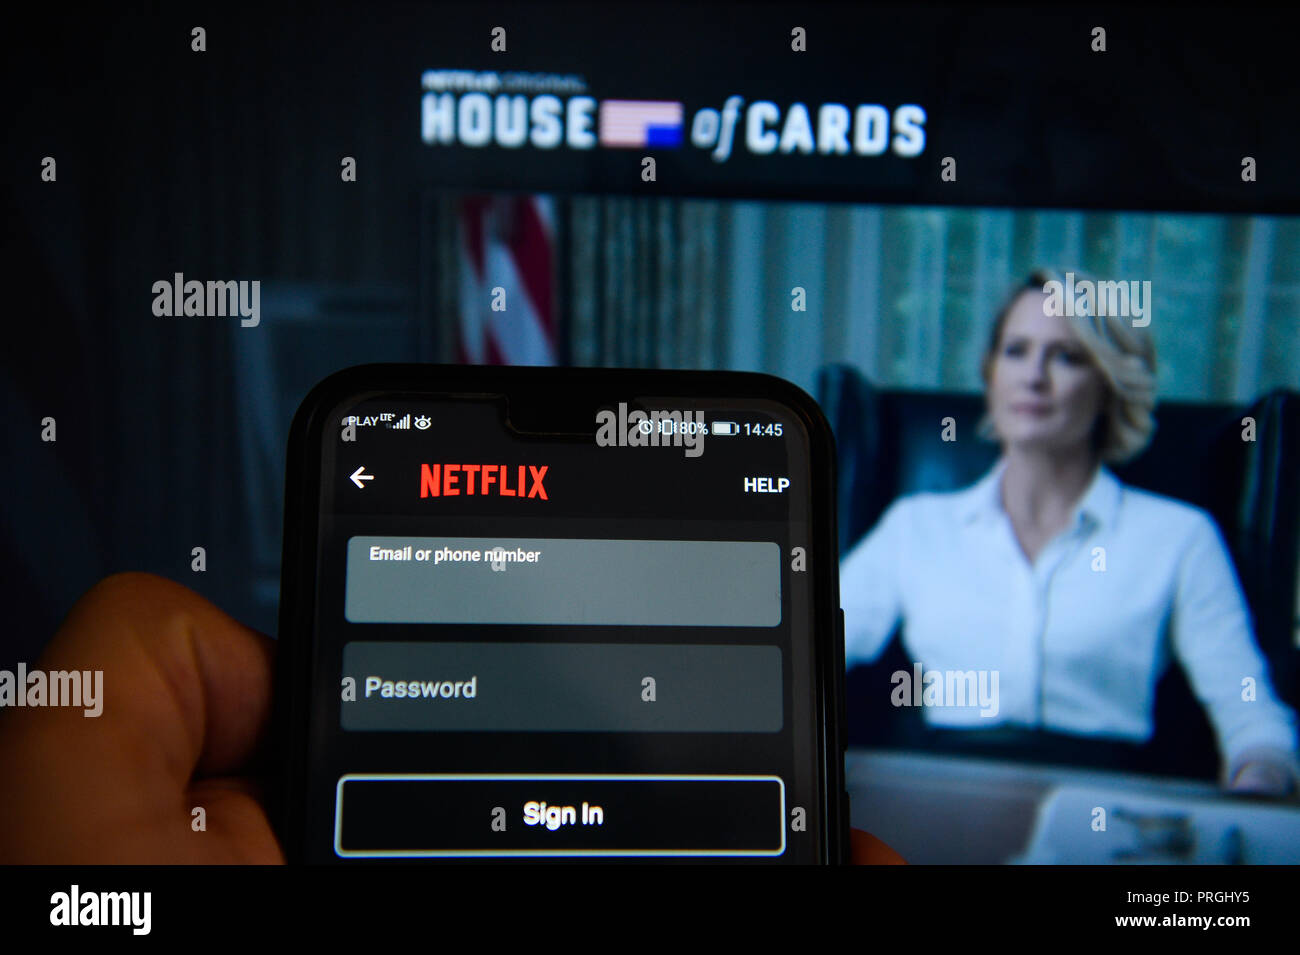 October 2, 2018 - Krakow, Poland - Netflix app is seen on an Android